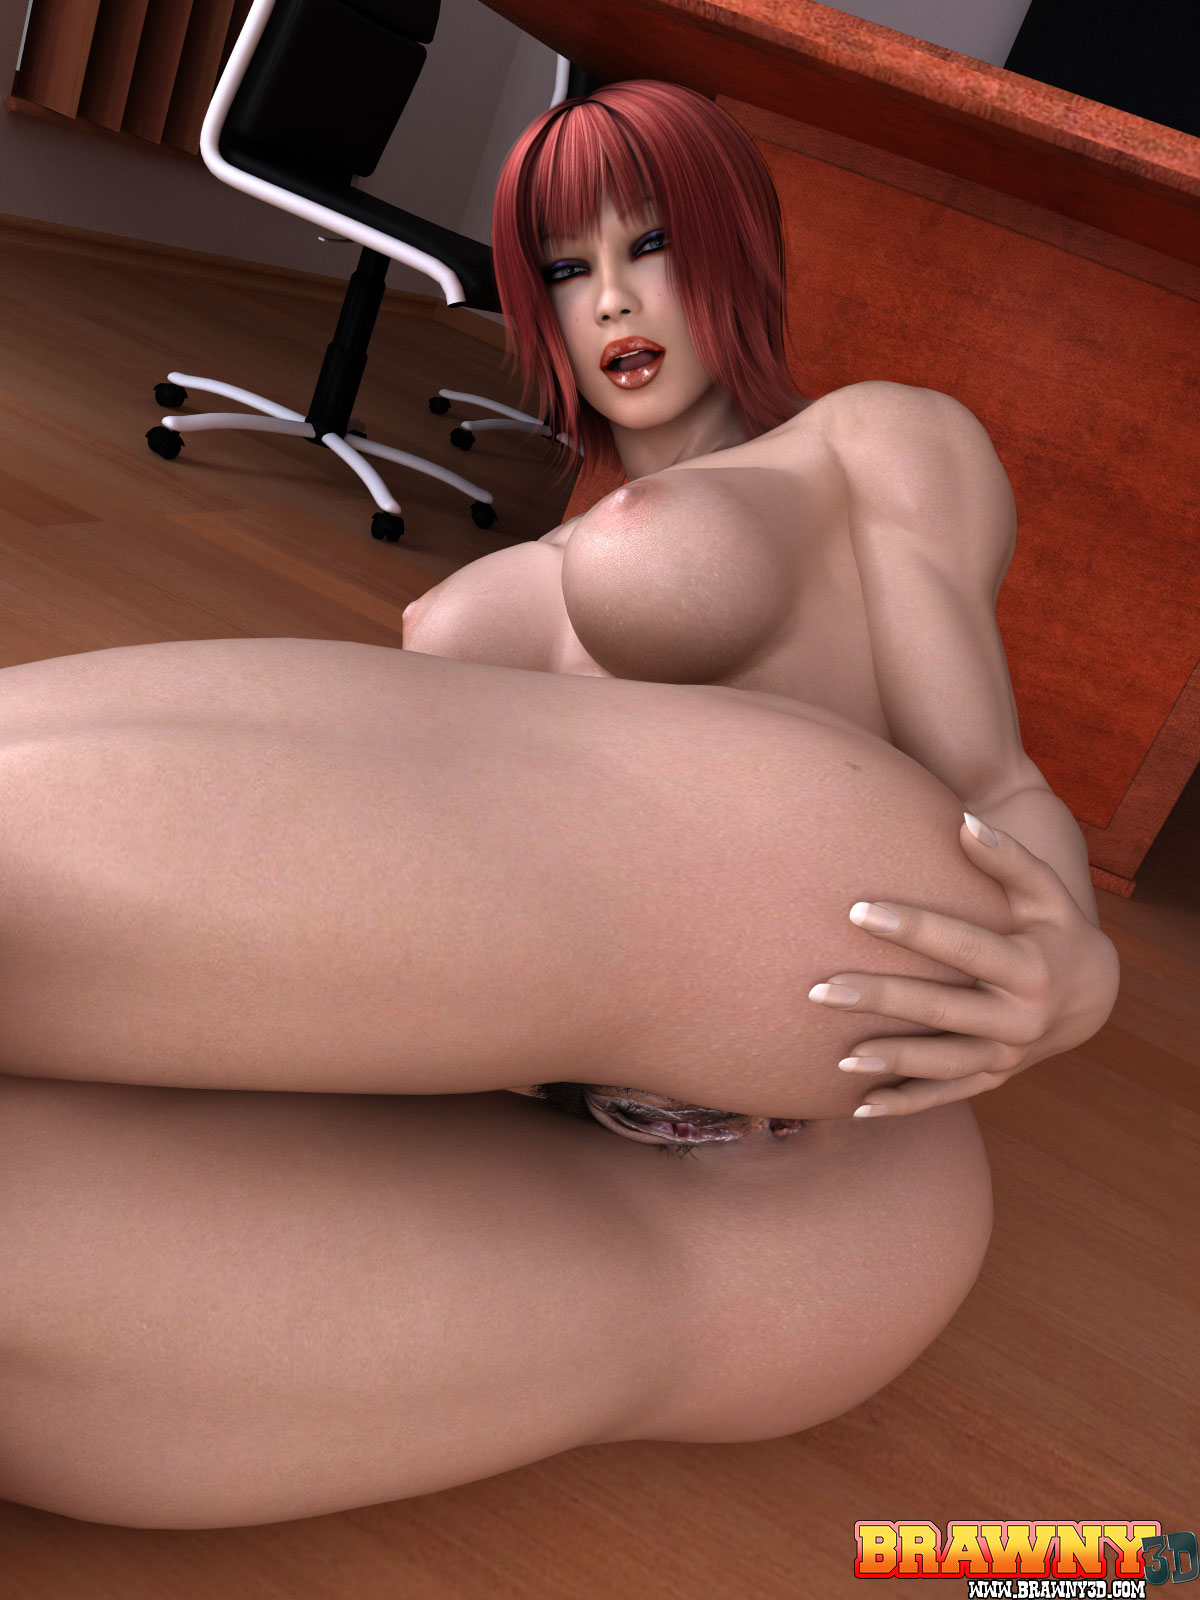 3d nude cartoon pictures hentia pic